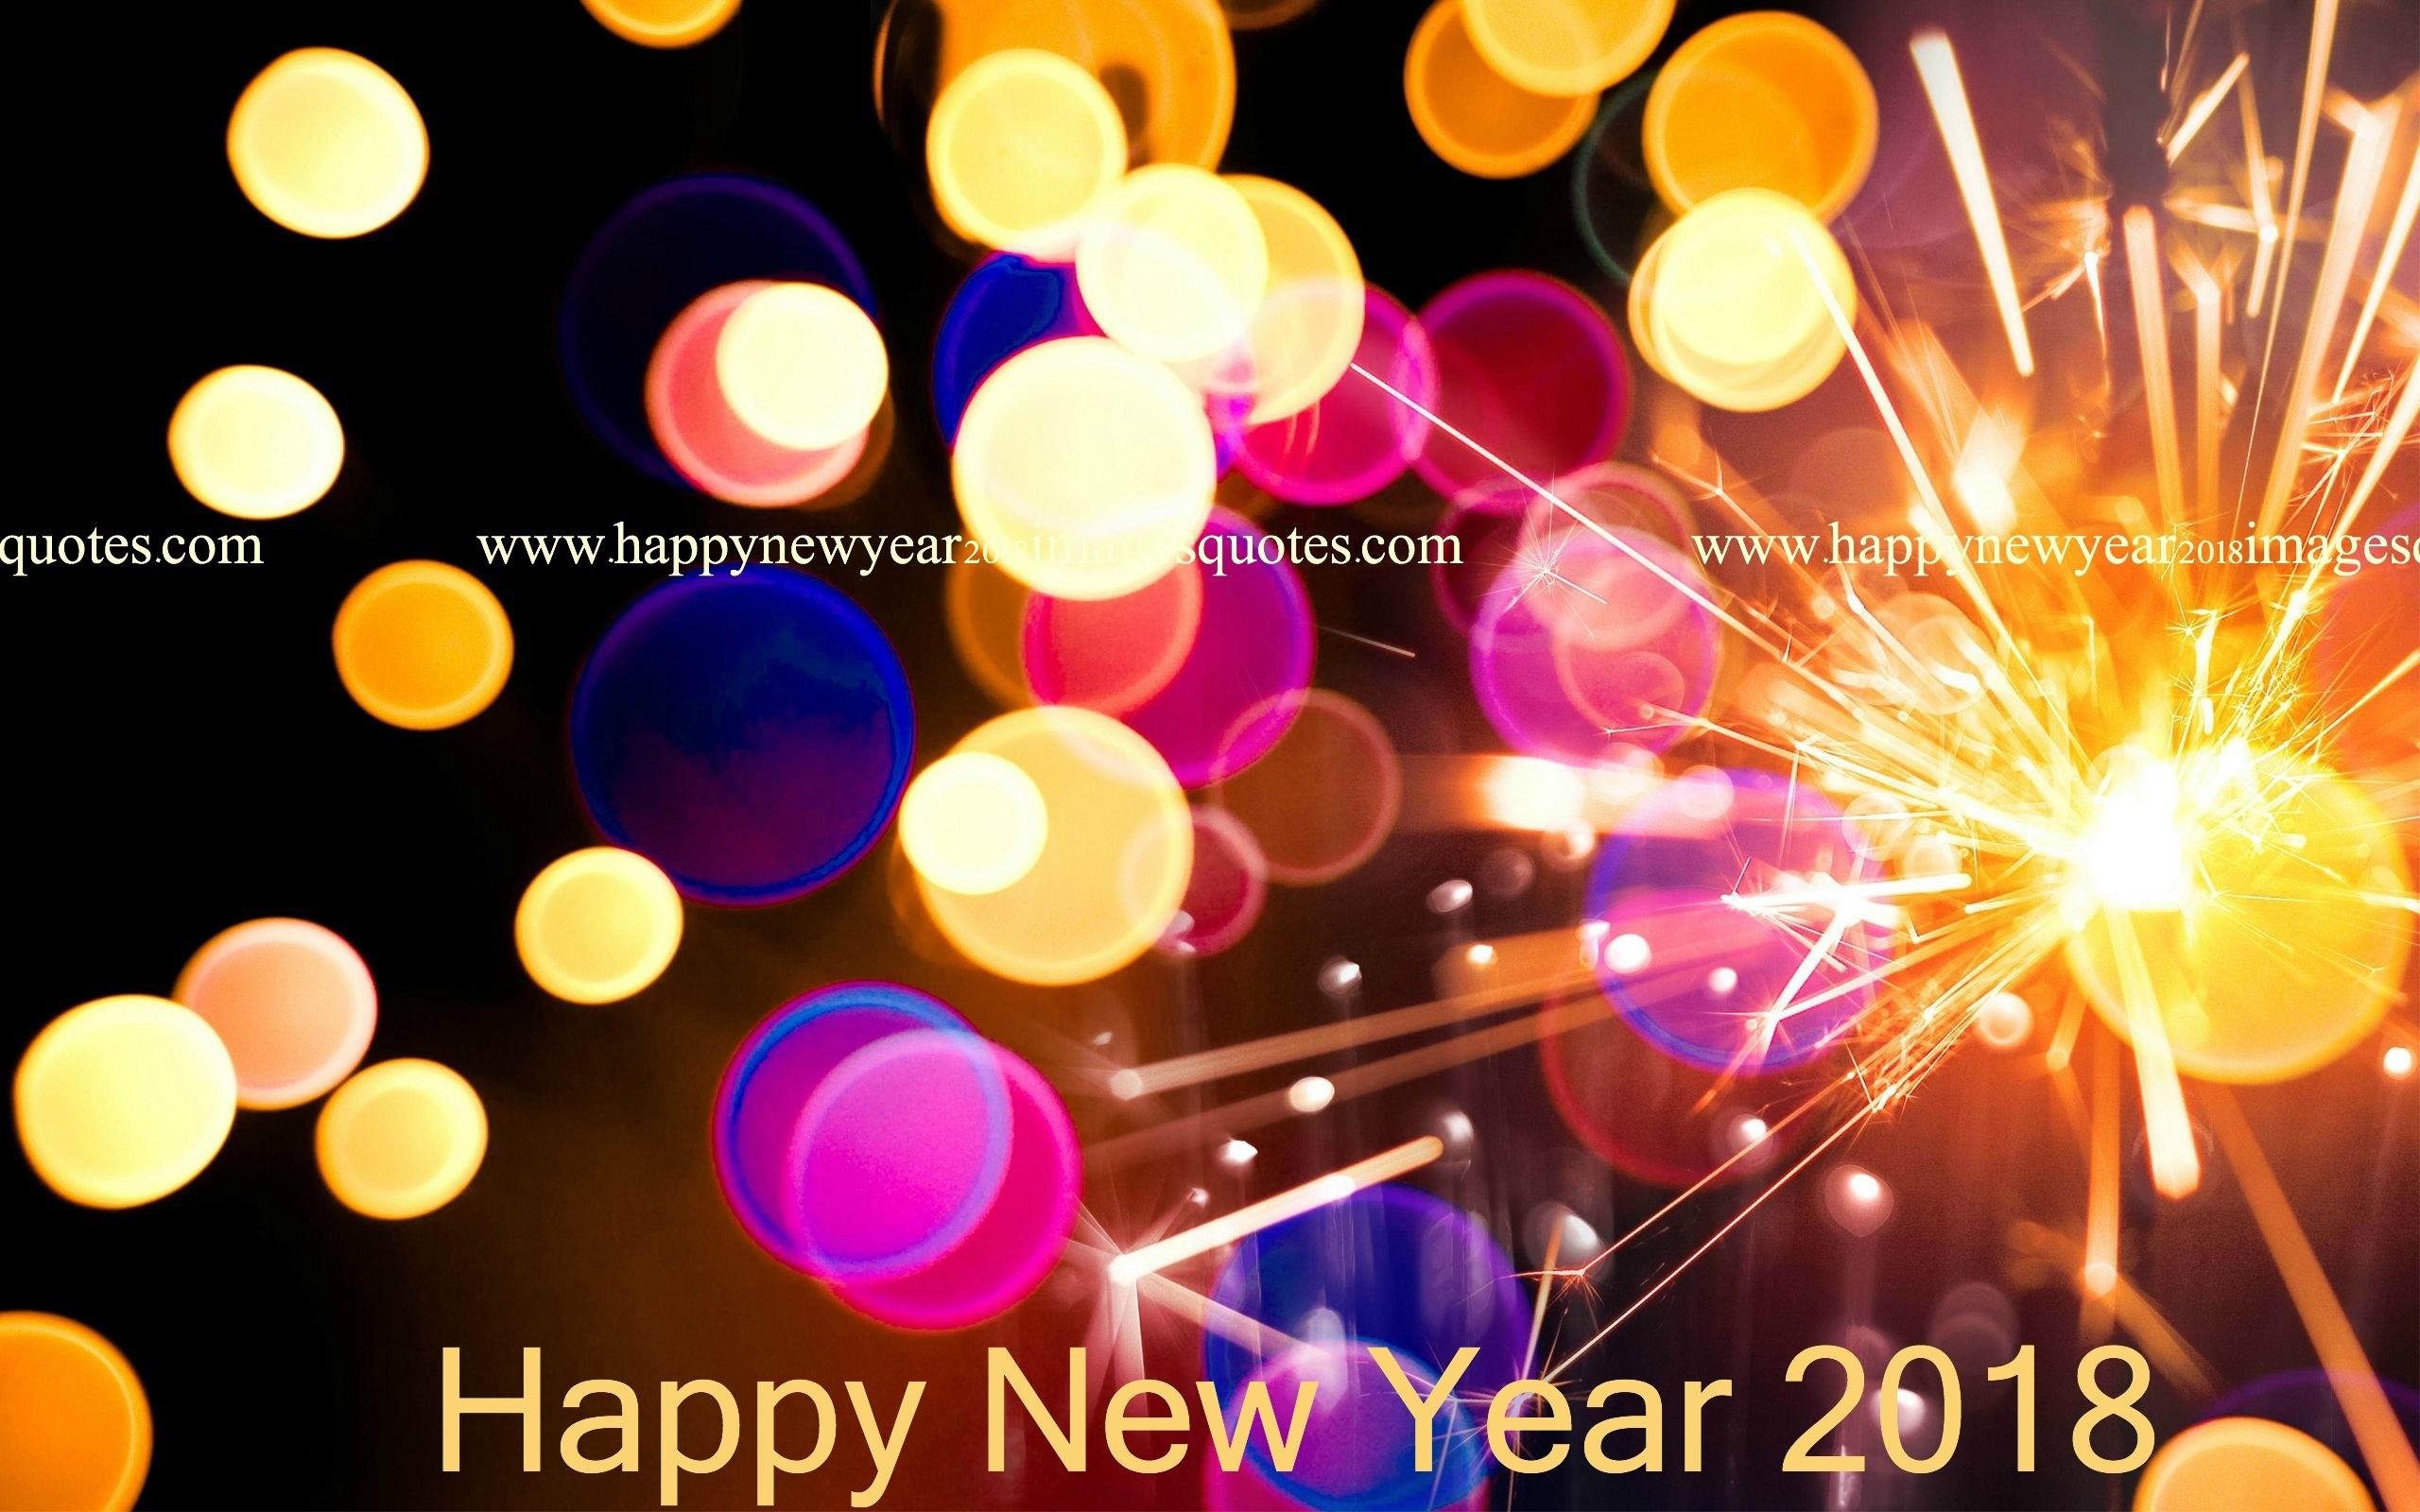 1920x1080 happy new year 2018 pictures in advance happy new year 2017 pictures in advance download